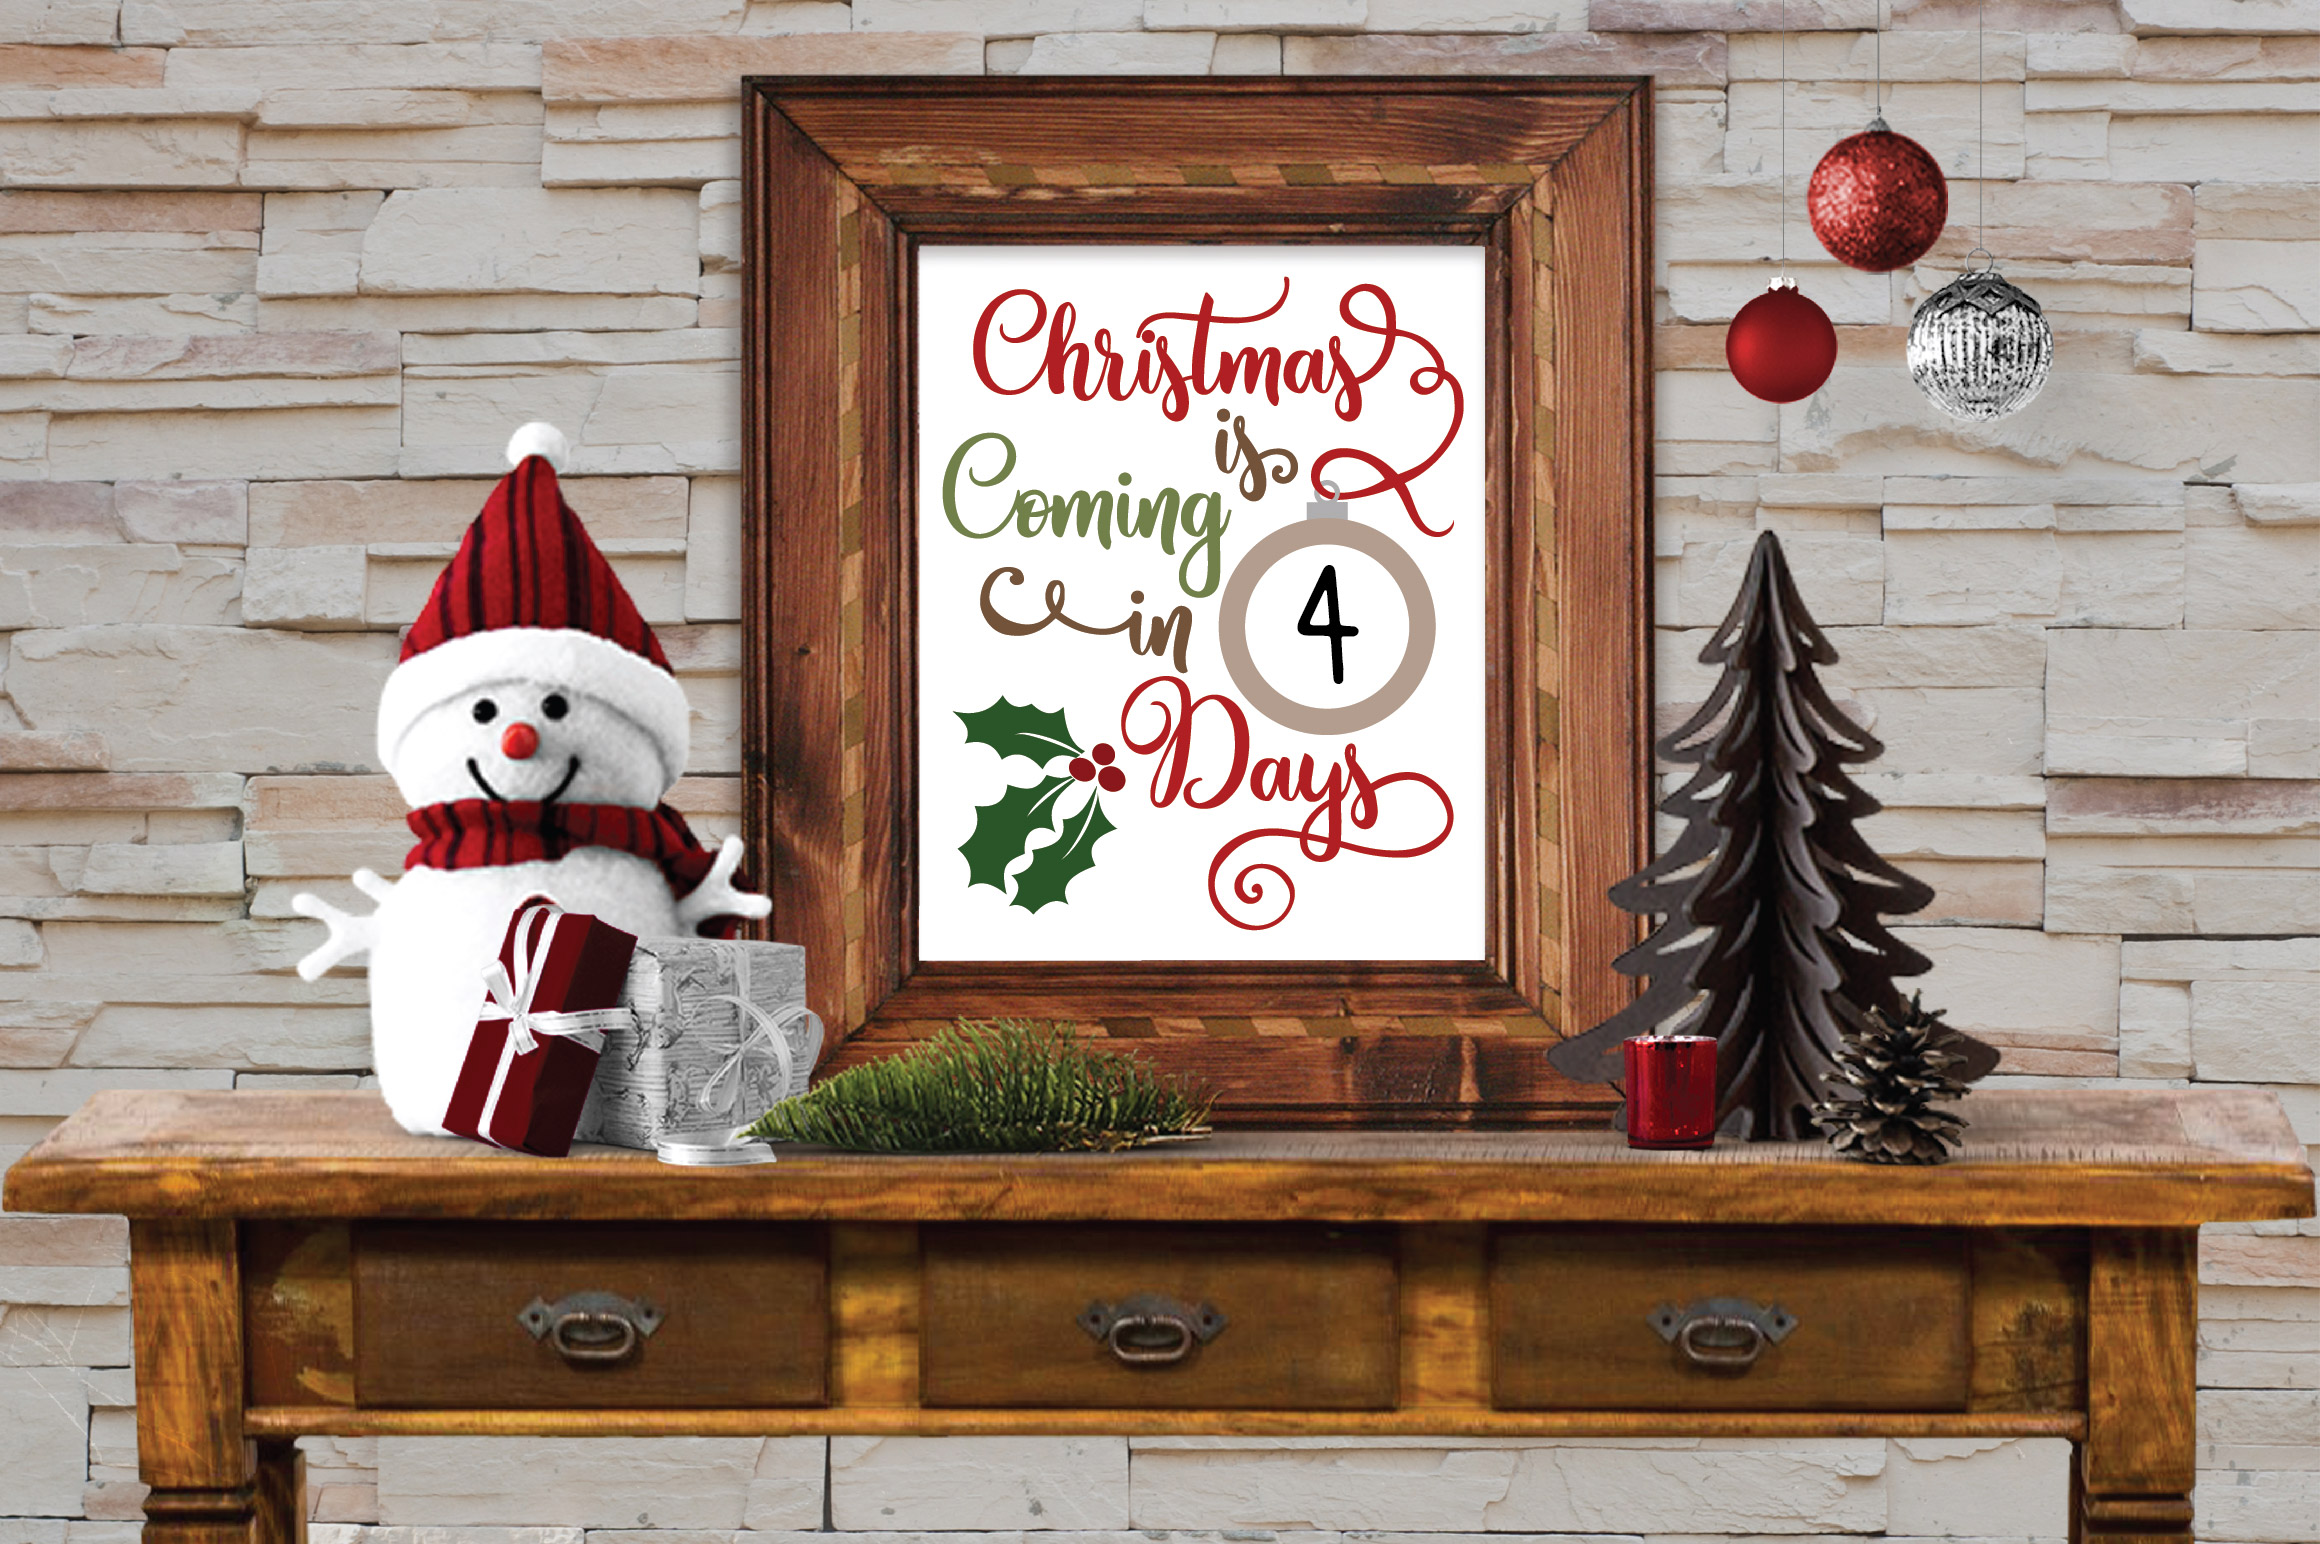 Christmas Countdown SVG Cut File - Christmas Ornament SVG example image 2